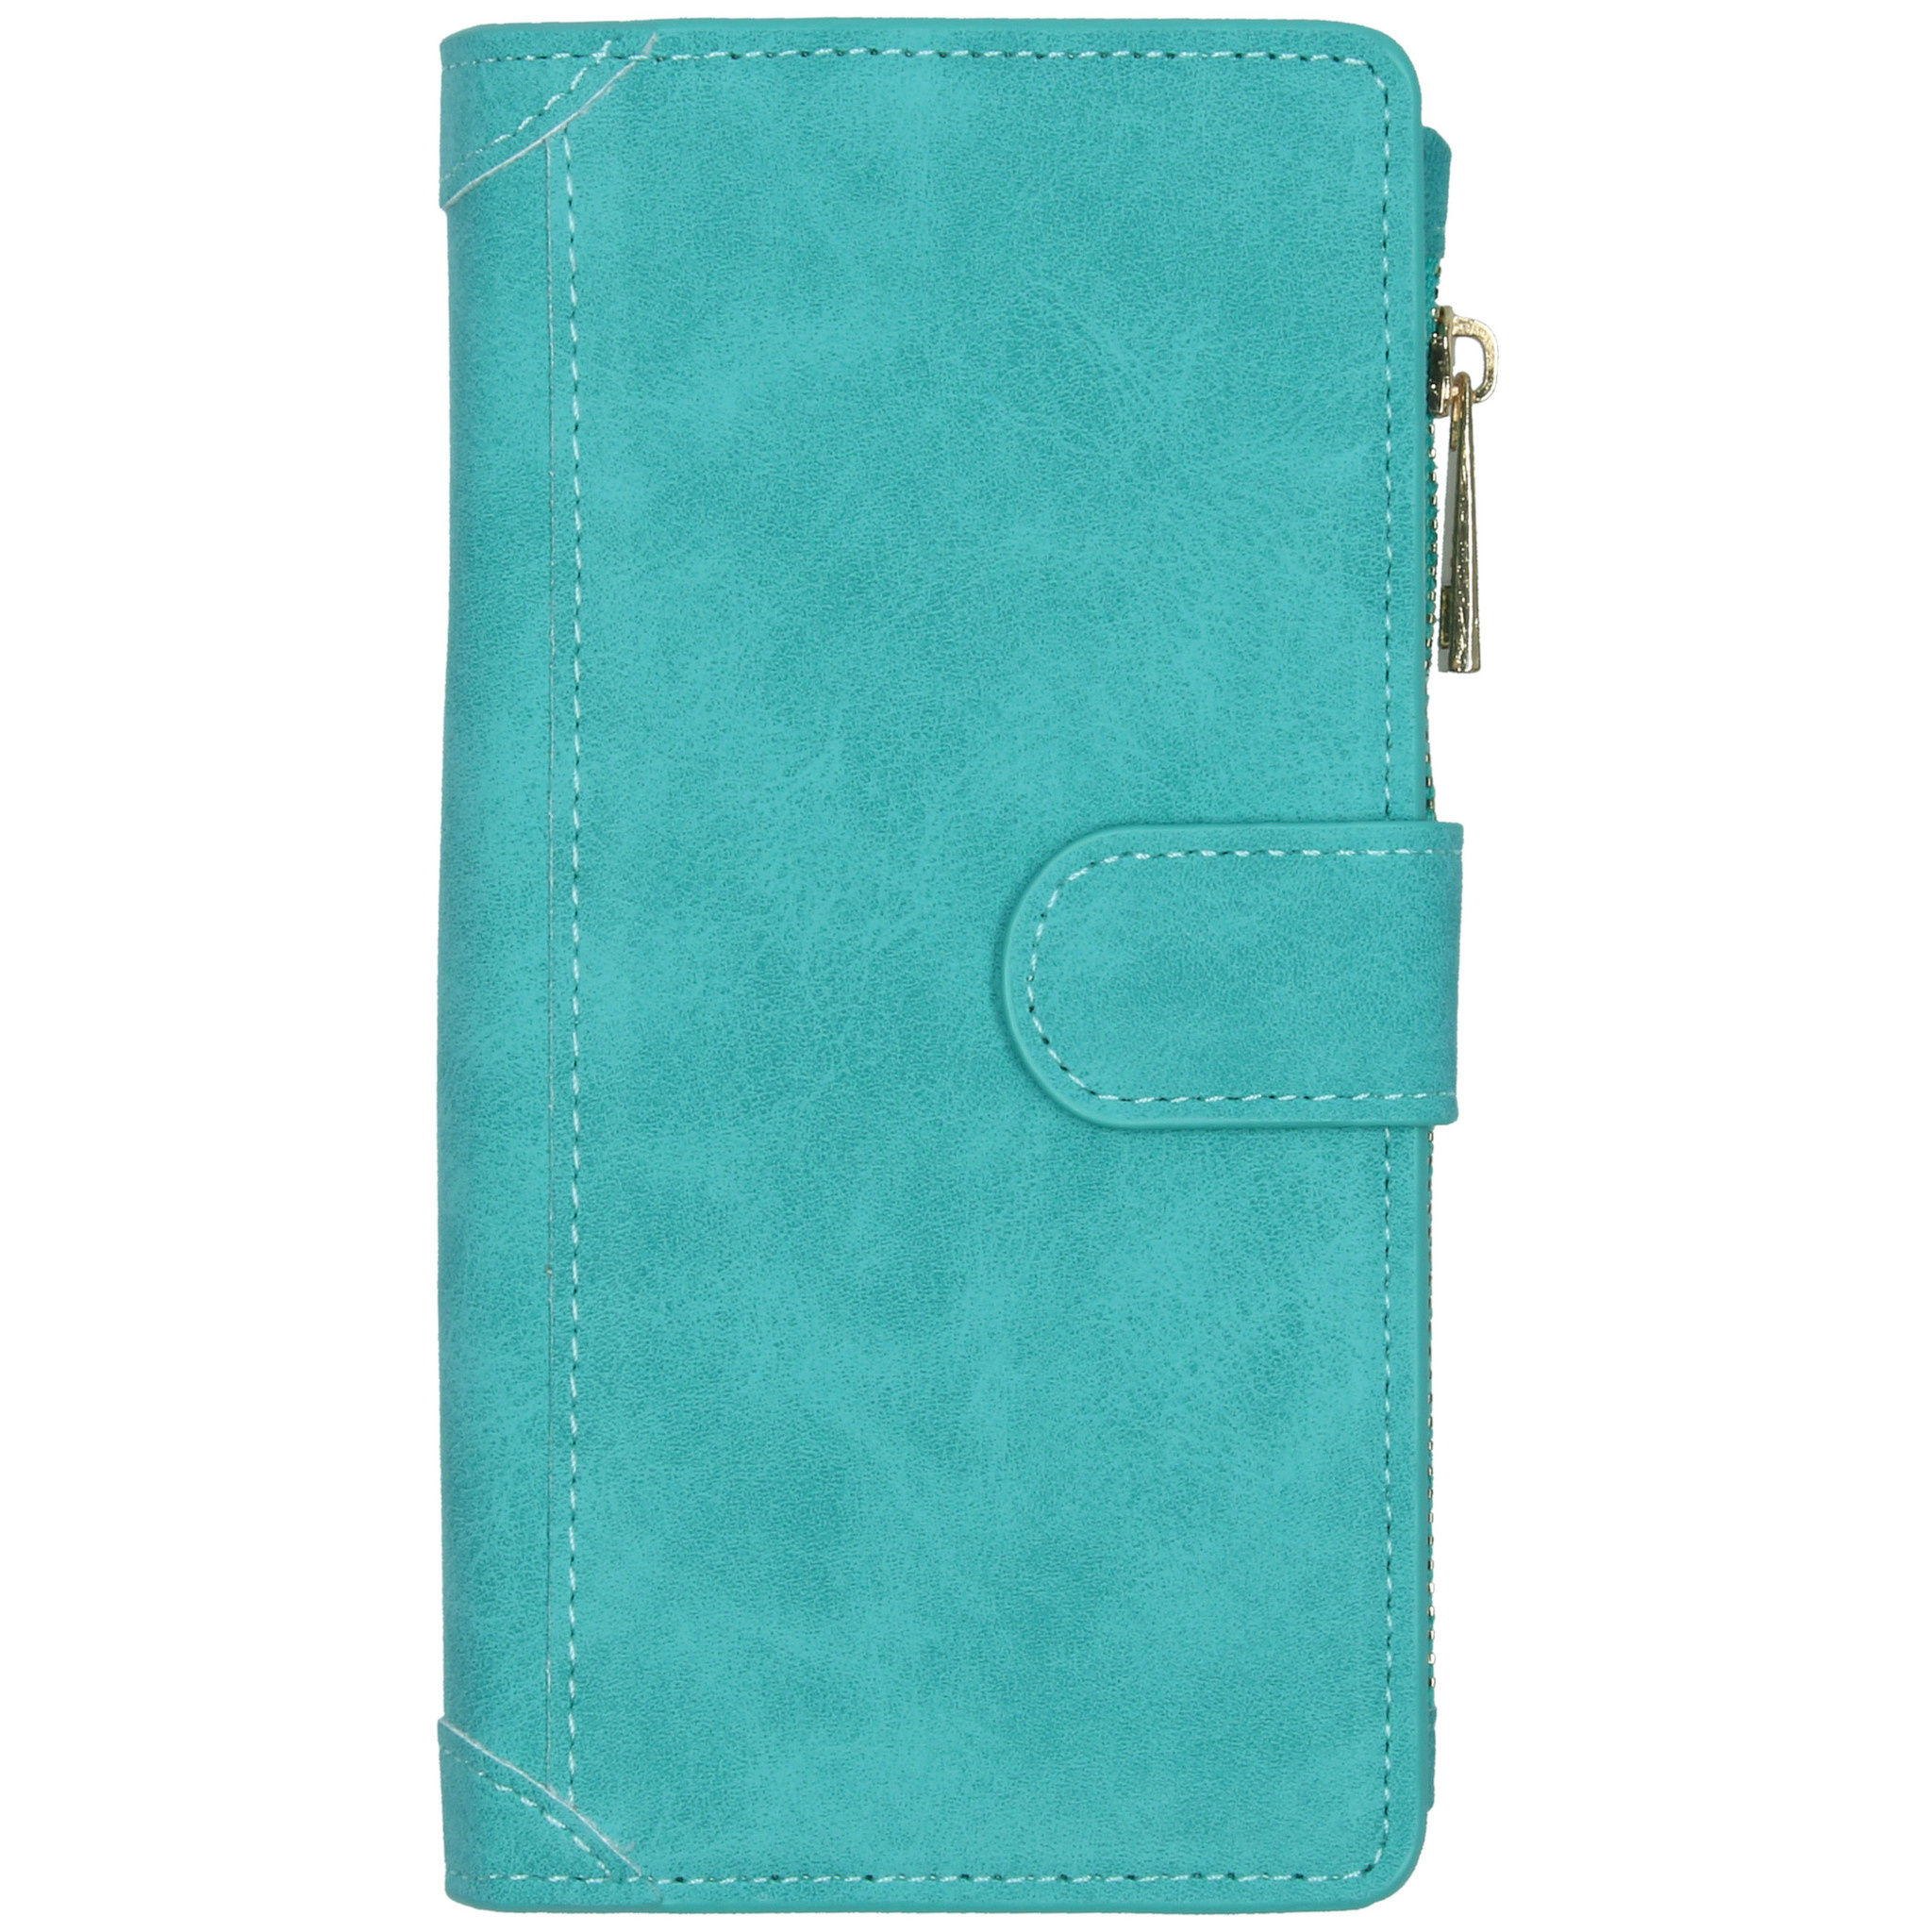 Luxe Portemonnee Samsung Galaxy A51 - Turquoise